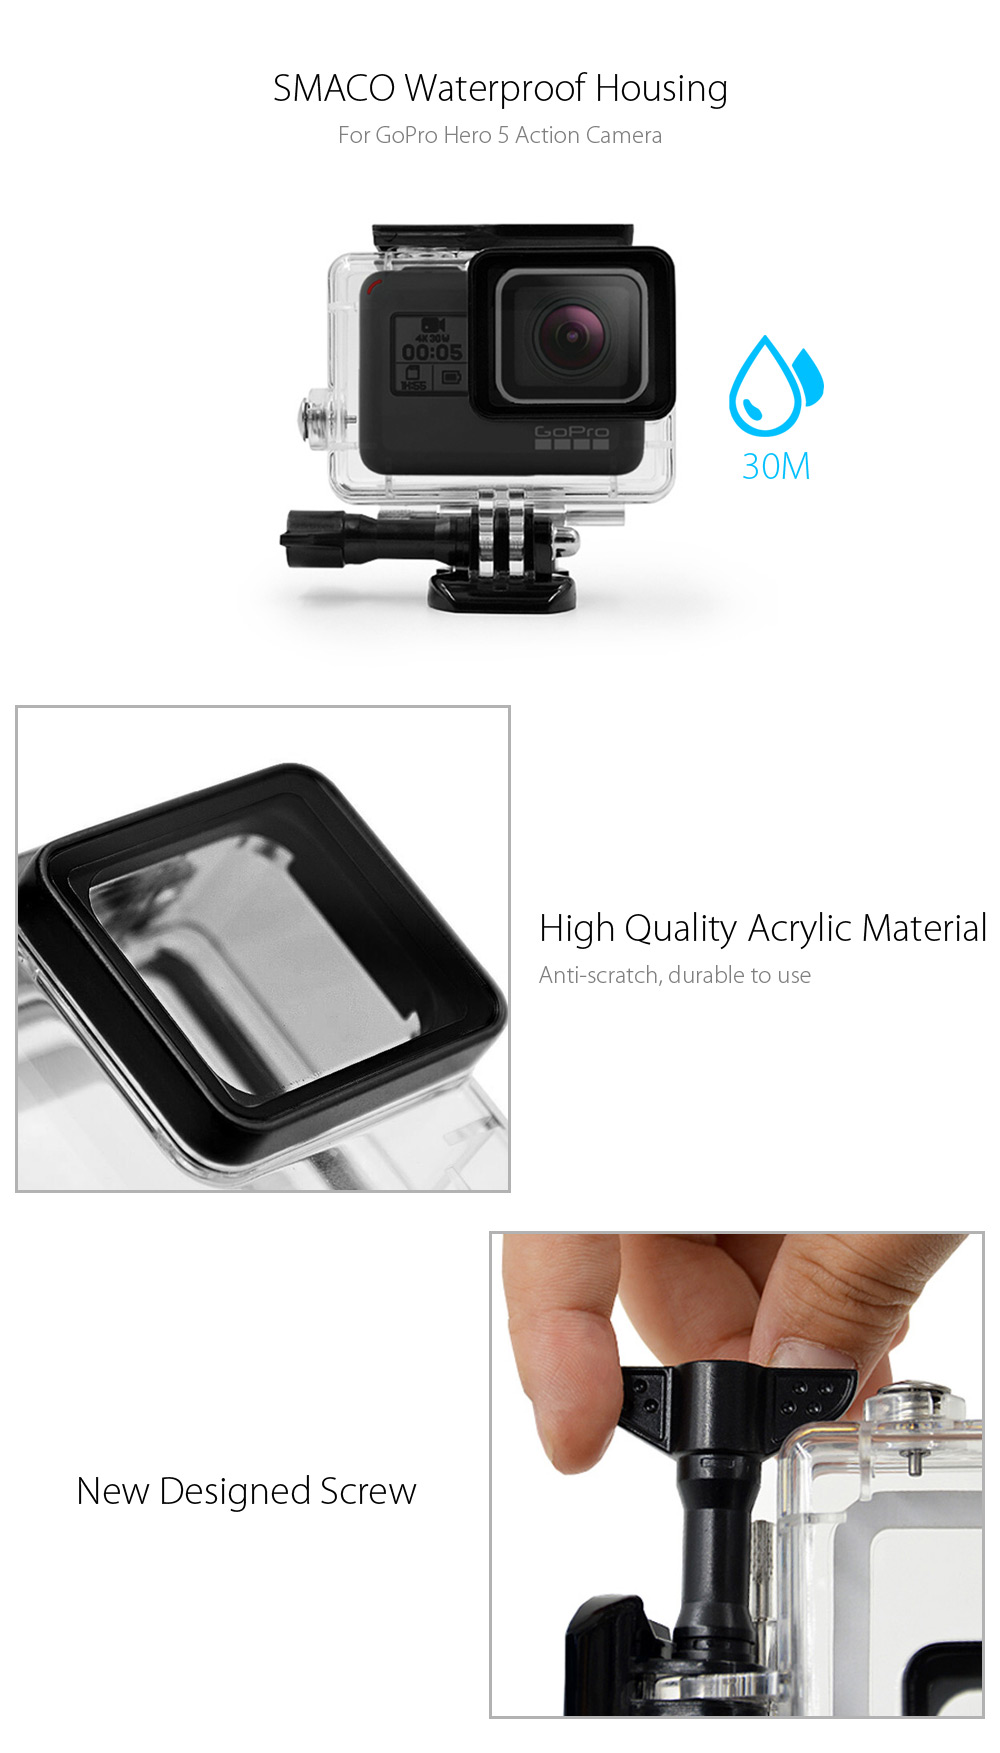 SMACO 30M Waterproof Housing for GoPro Hero 5 Action Camera Acrylic Material